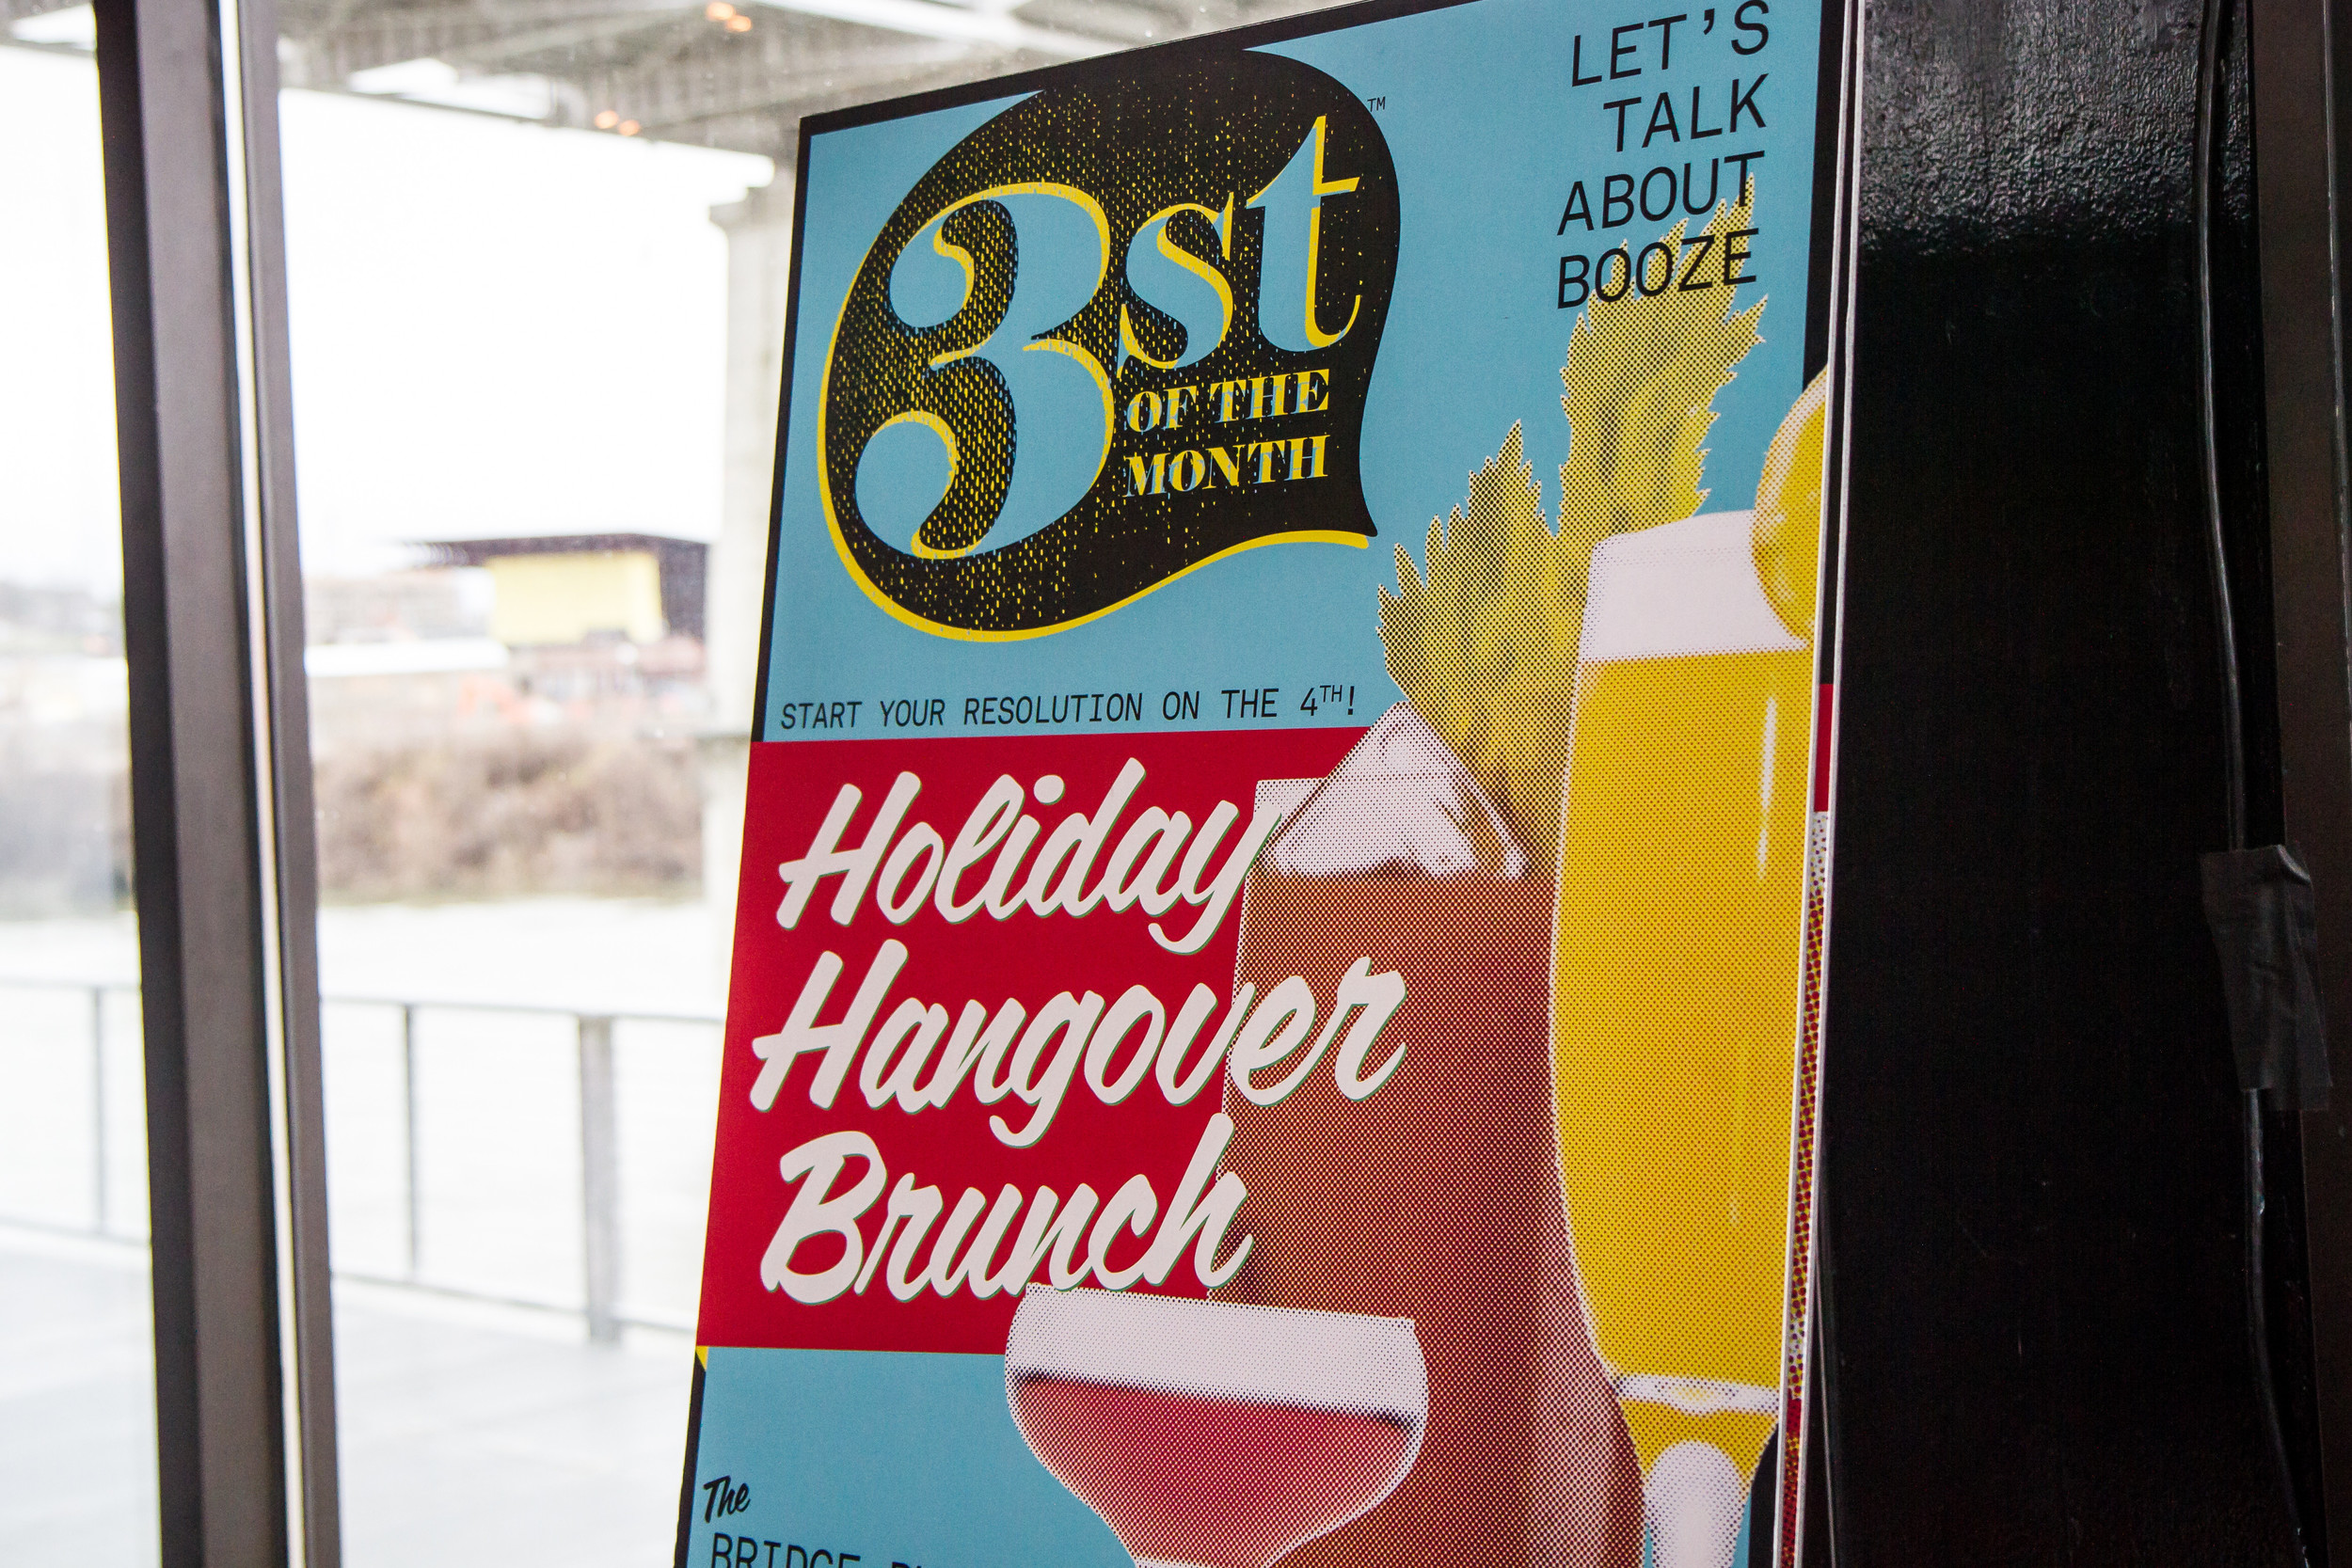 0650-3st Of The Month_Holiday Hangover Brunch.jpg